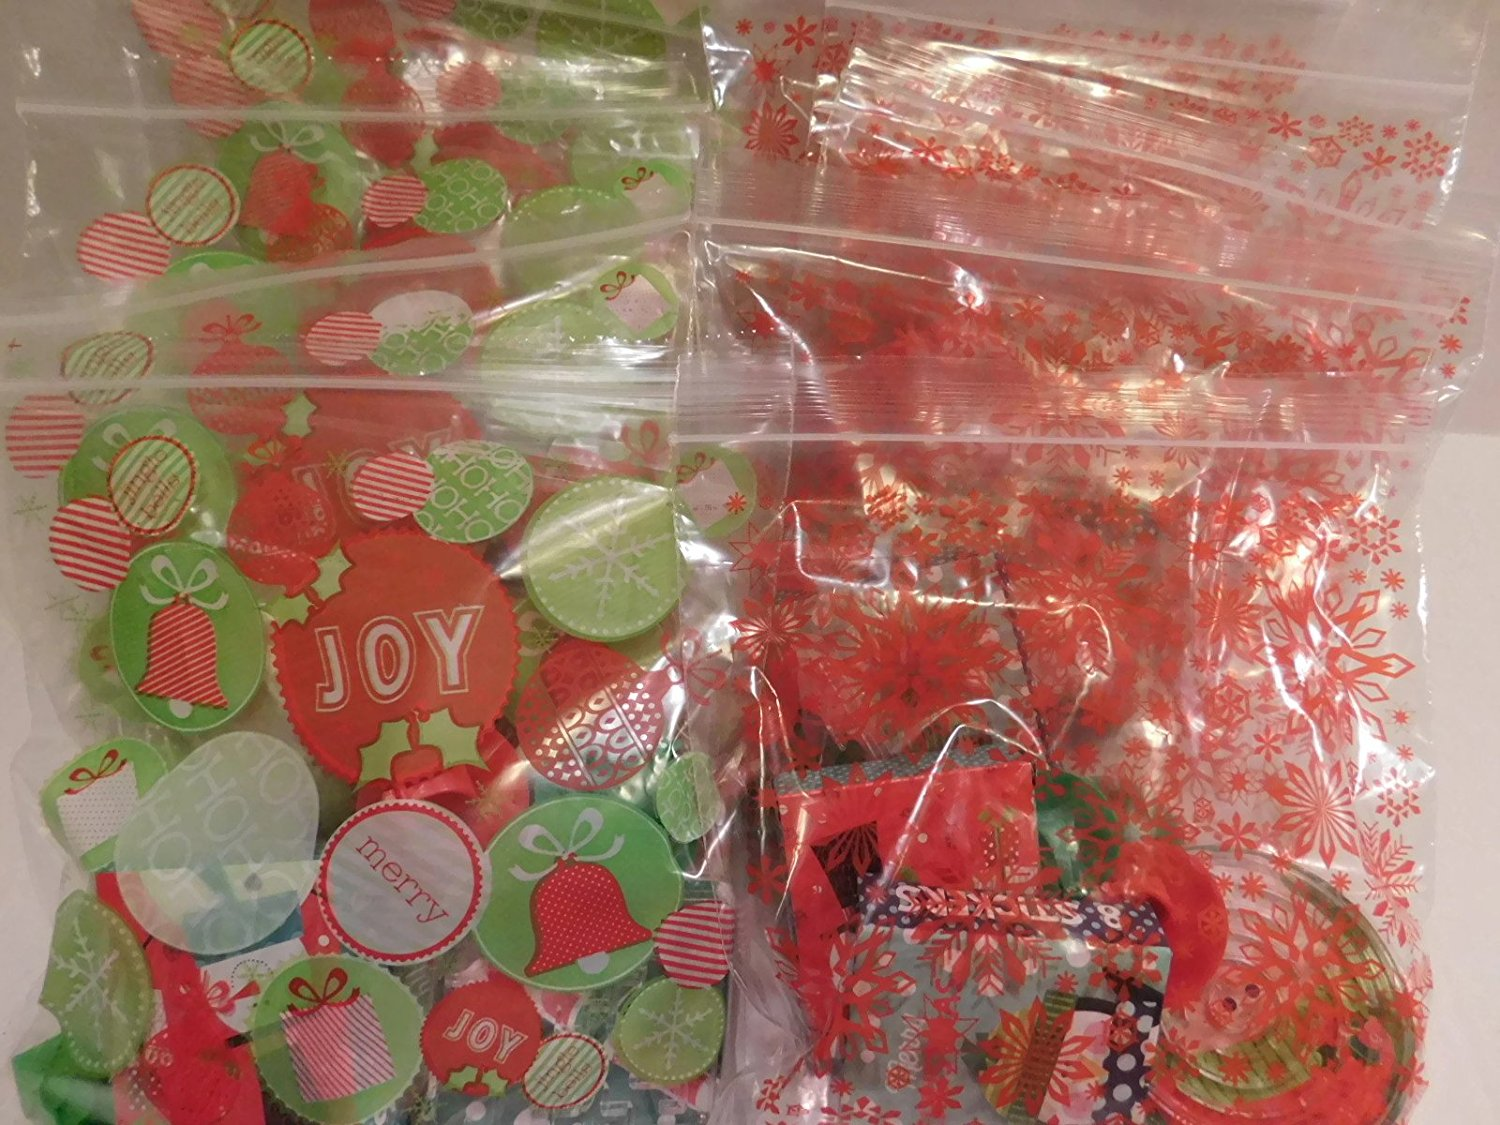 Happy Holidays Pre-Filled Favor Bags! Perfect For Classroom Gift Exchange, Christmas Party Favors Goodies! Bundle of 30 Non-food